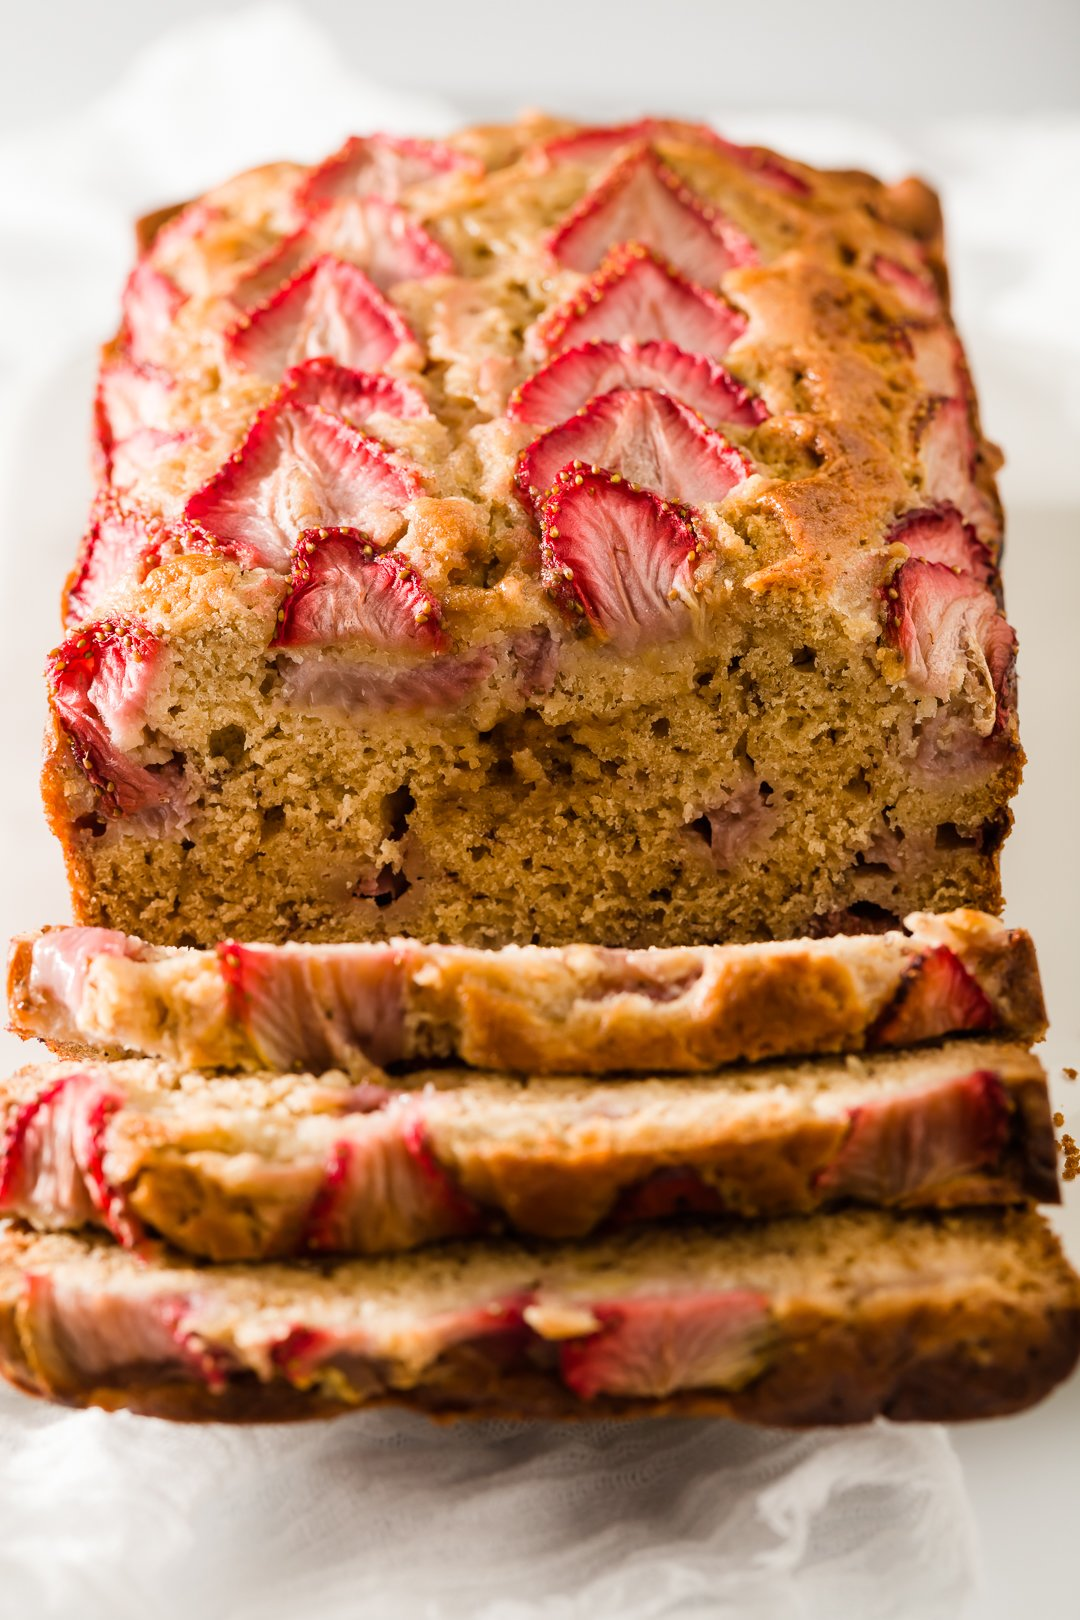 Strawberry banana bread with three slices falling down from it